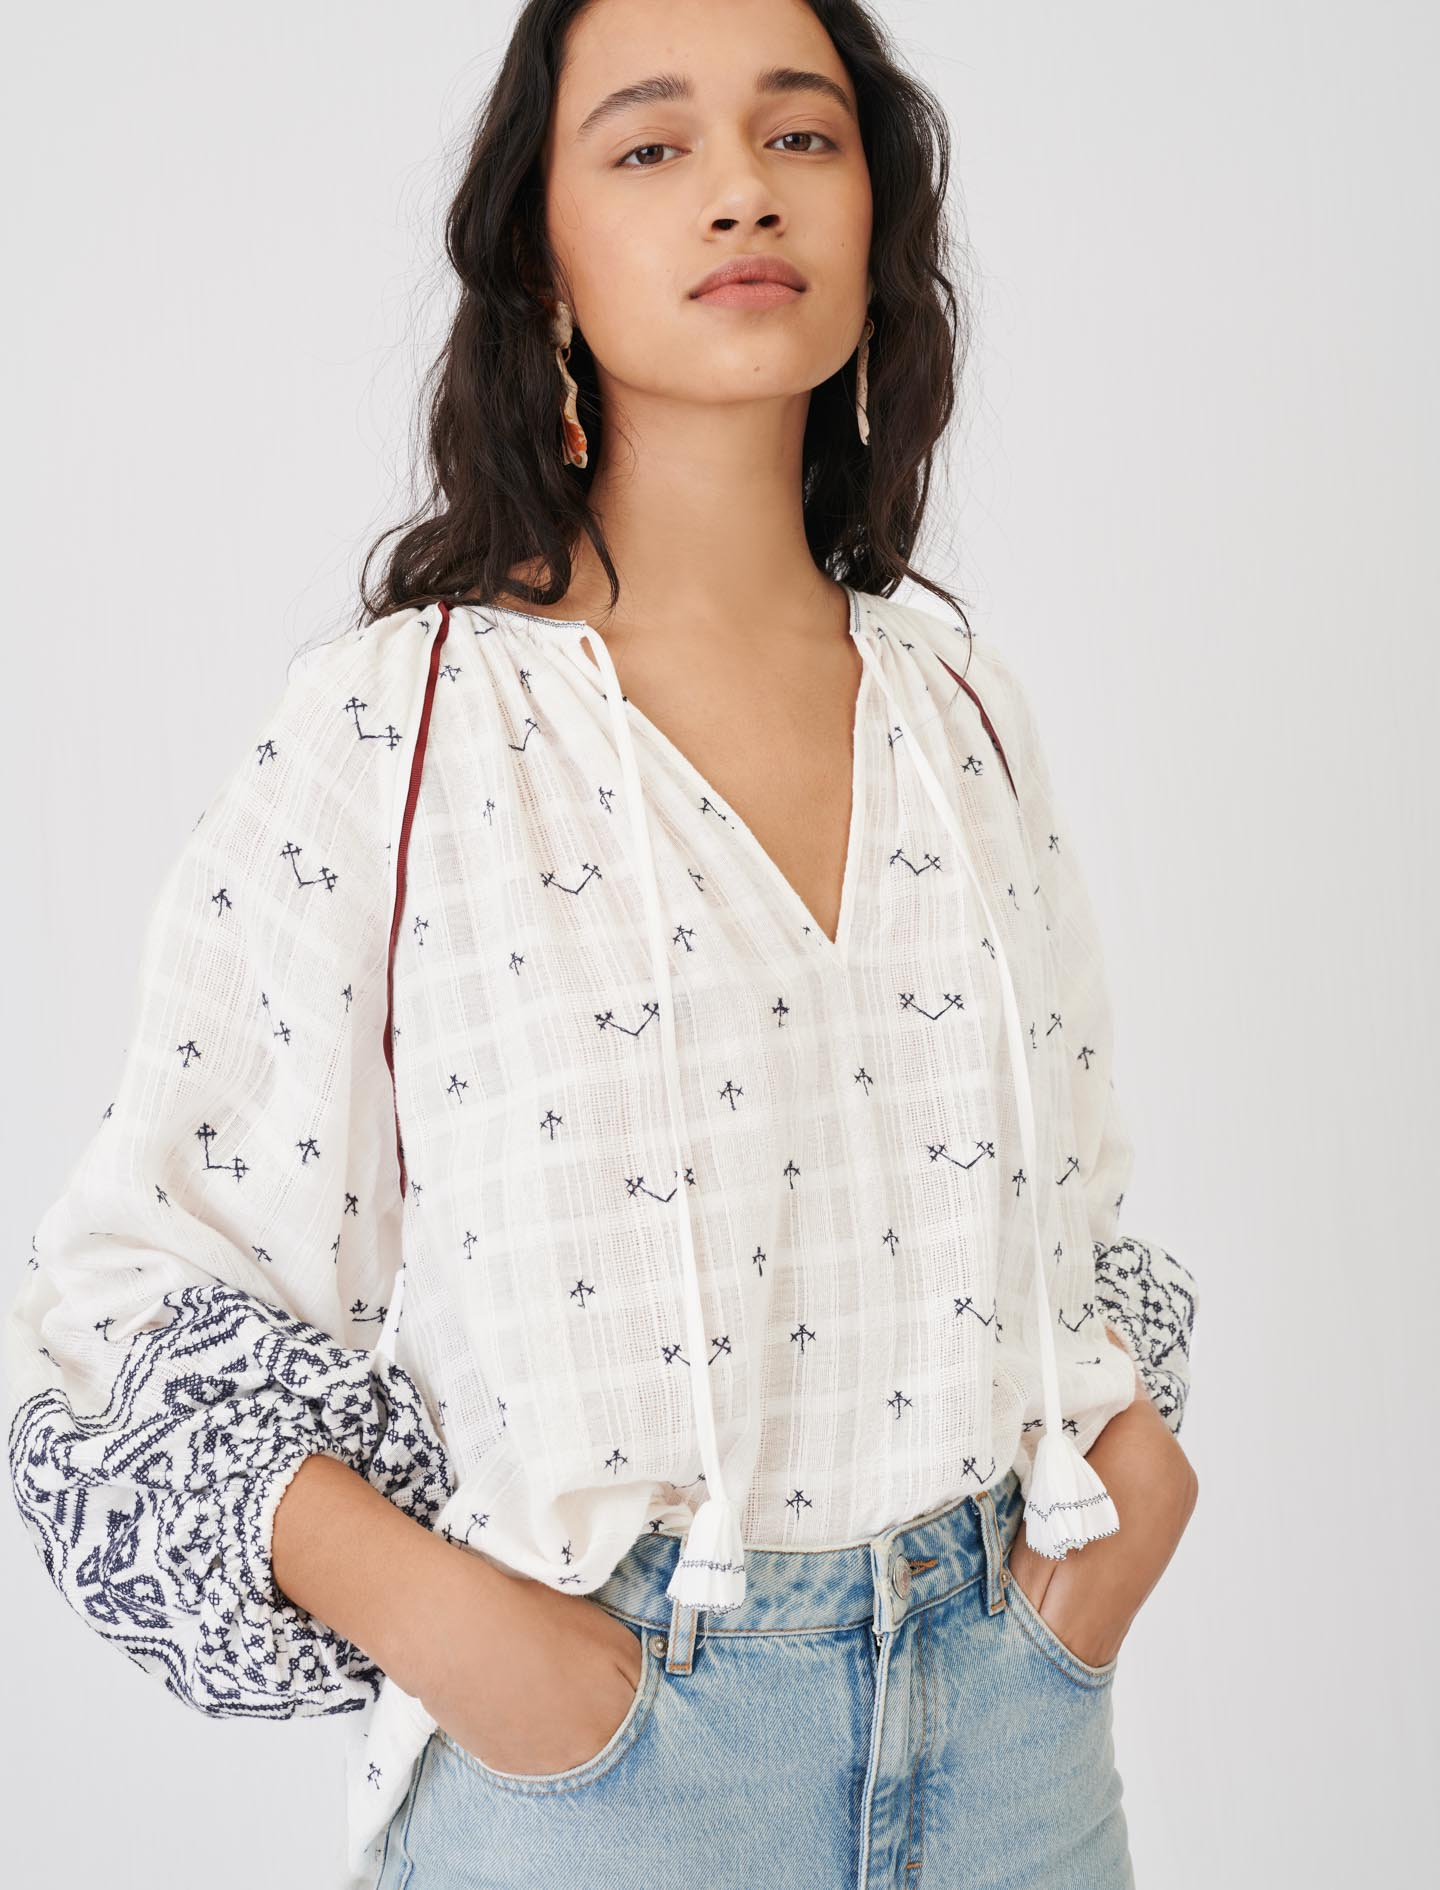 Maje Fully embroidery blouse with low neck